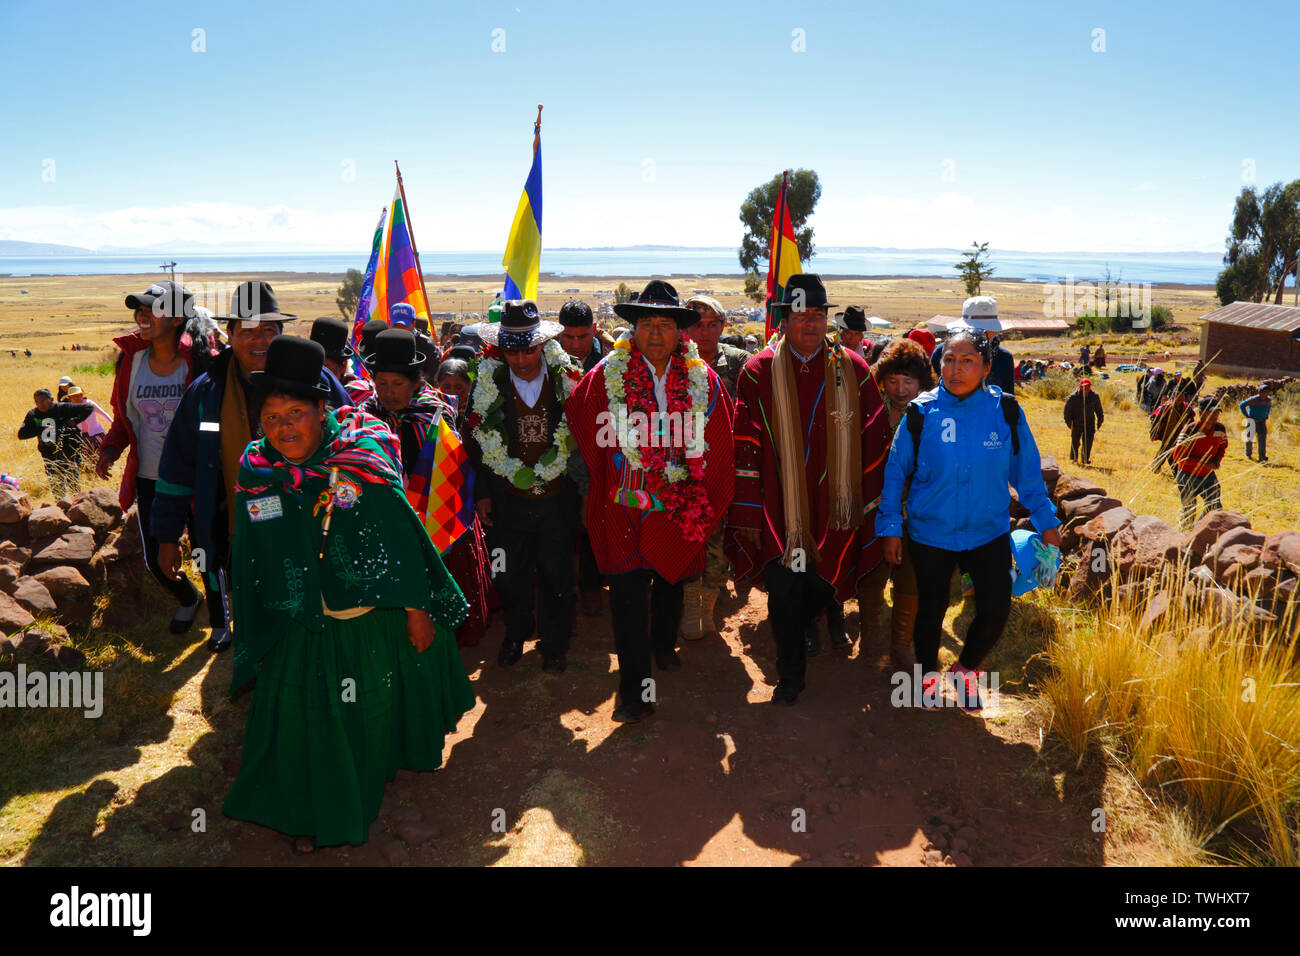 Bolivia 20th June 2019: Bolivian president Evo Morales Ayma (centre) leads an International Hike along a section of the Qhapaq Ñan Inca road from Azafranal near Lake Titicaca (which is visible in the background). The event was organised by the Ministry of Cultures & Tourism to promote tourism and Bolivia's indigenous cultures. - Stock Image